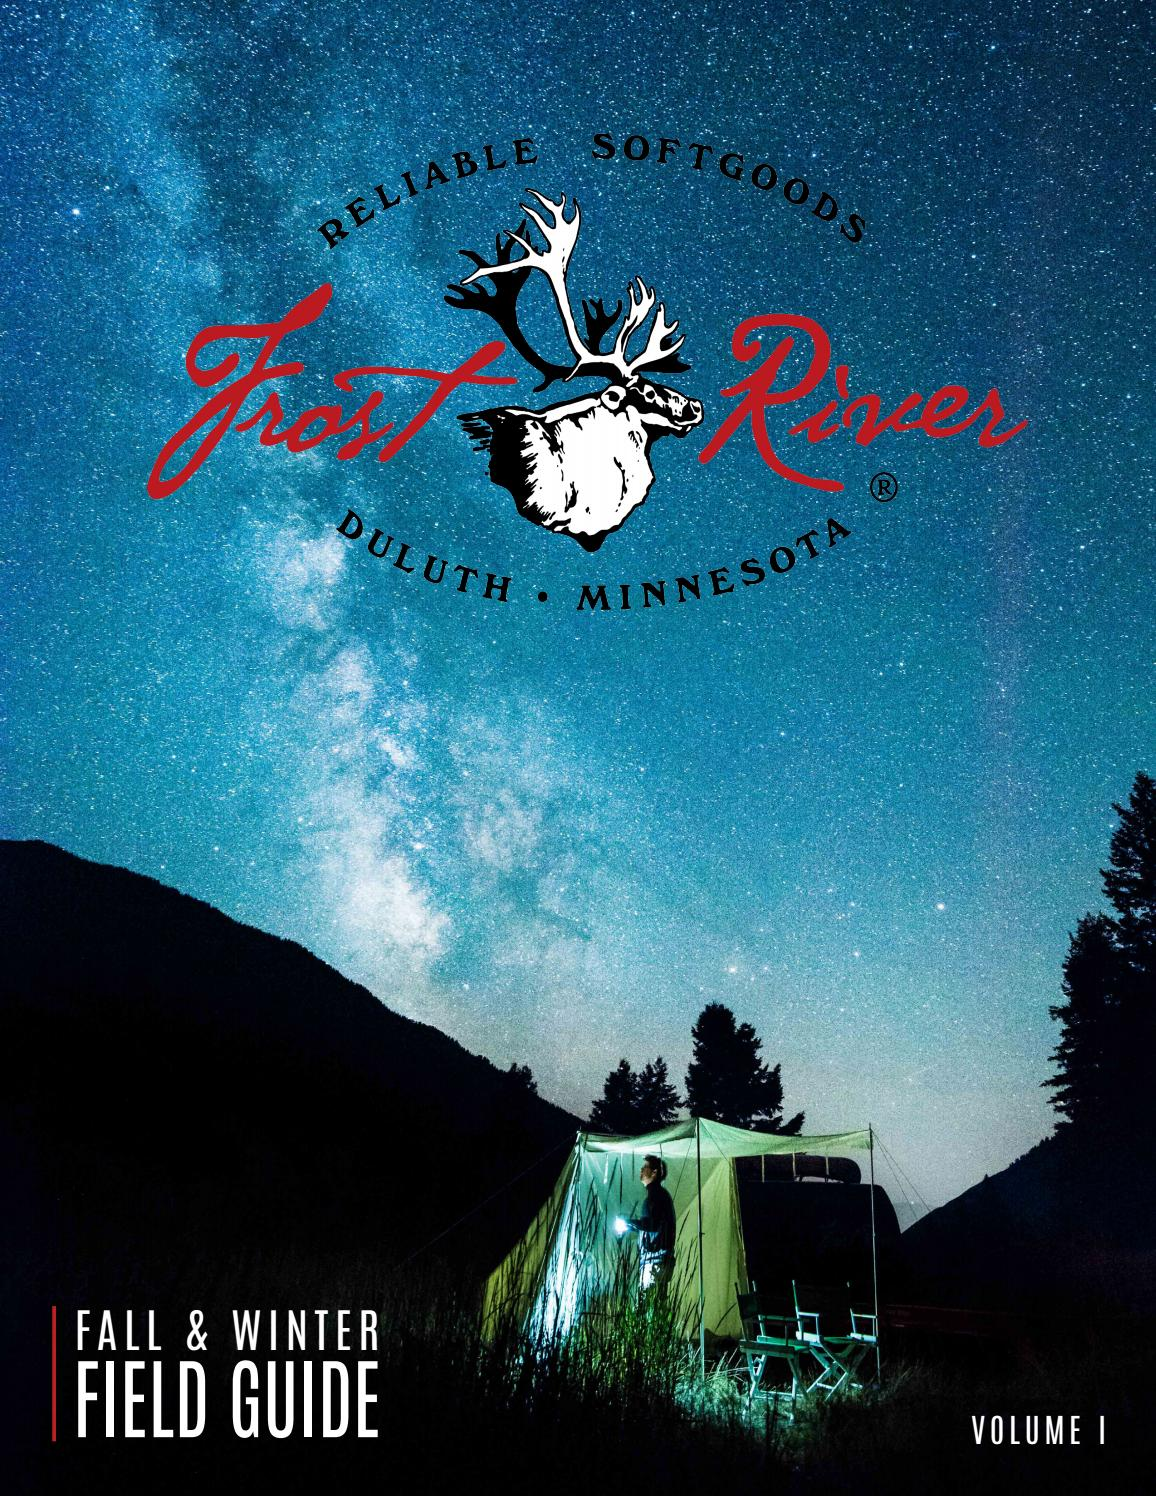 Frost River Field Guide Vol I By Frost River Issuu